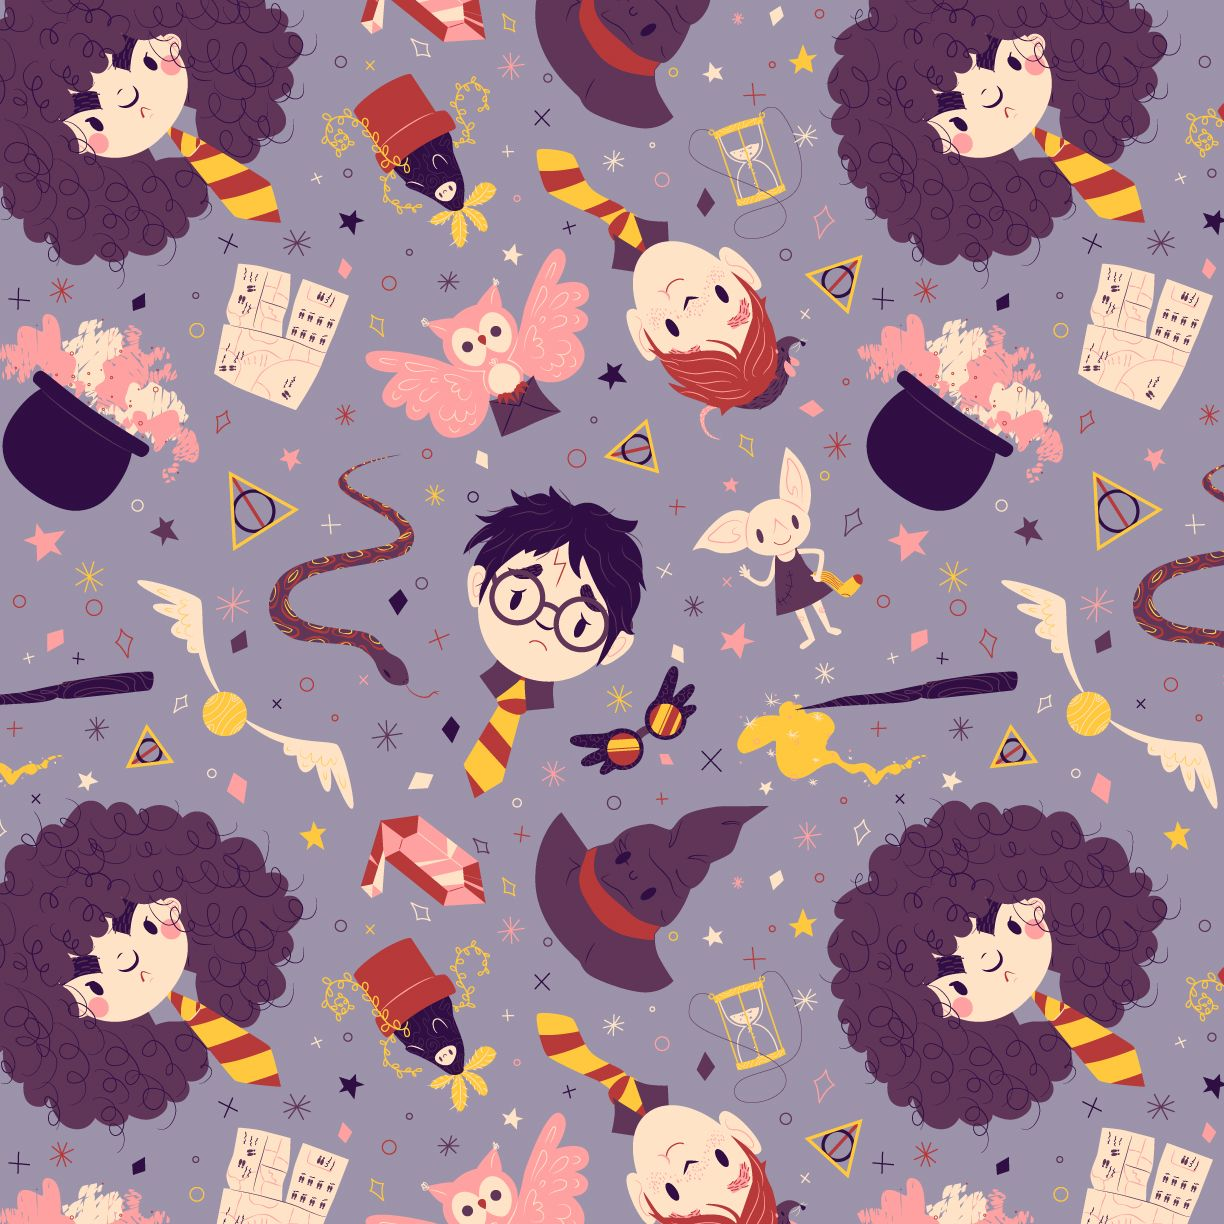 Harry Potter Iphone Wallpaper: Finished Harry Potter Pattern.